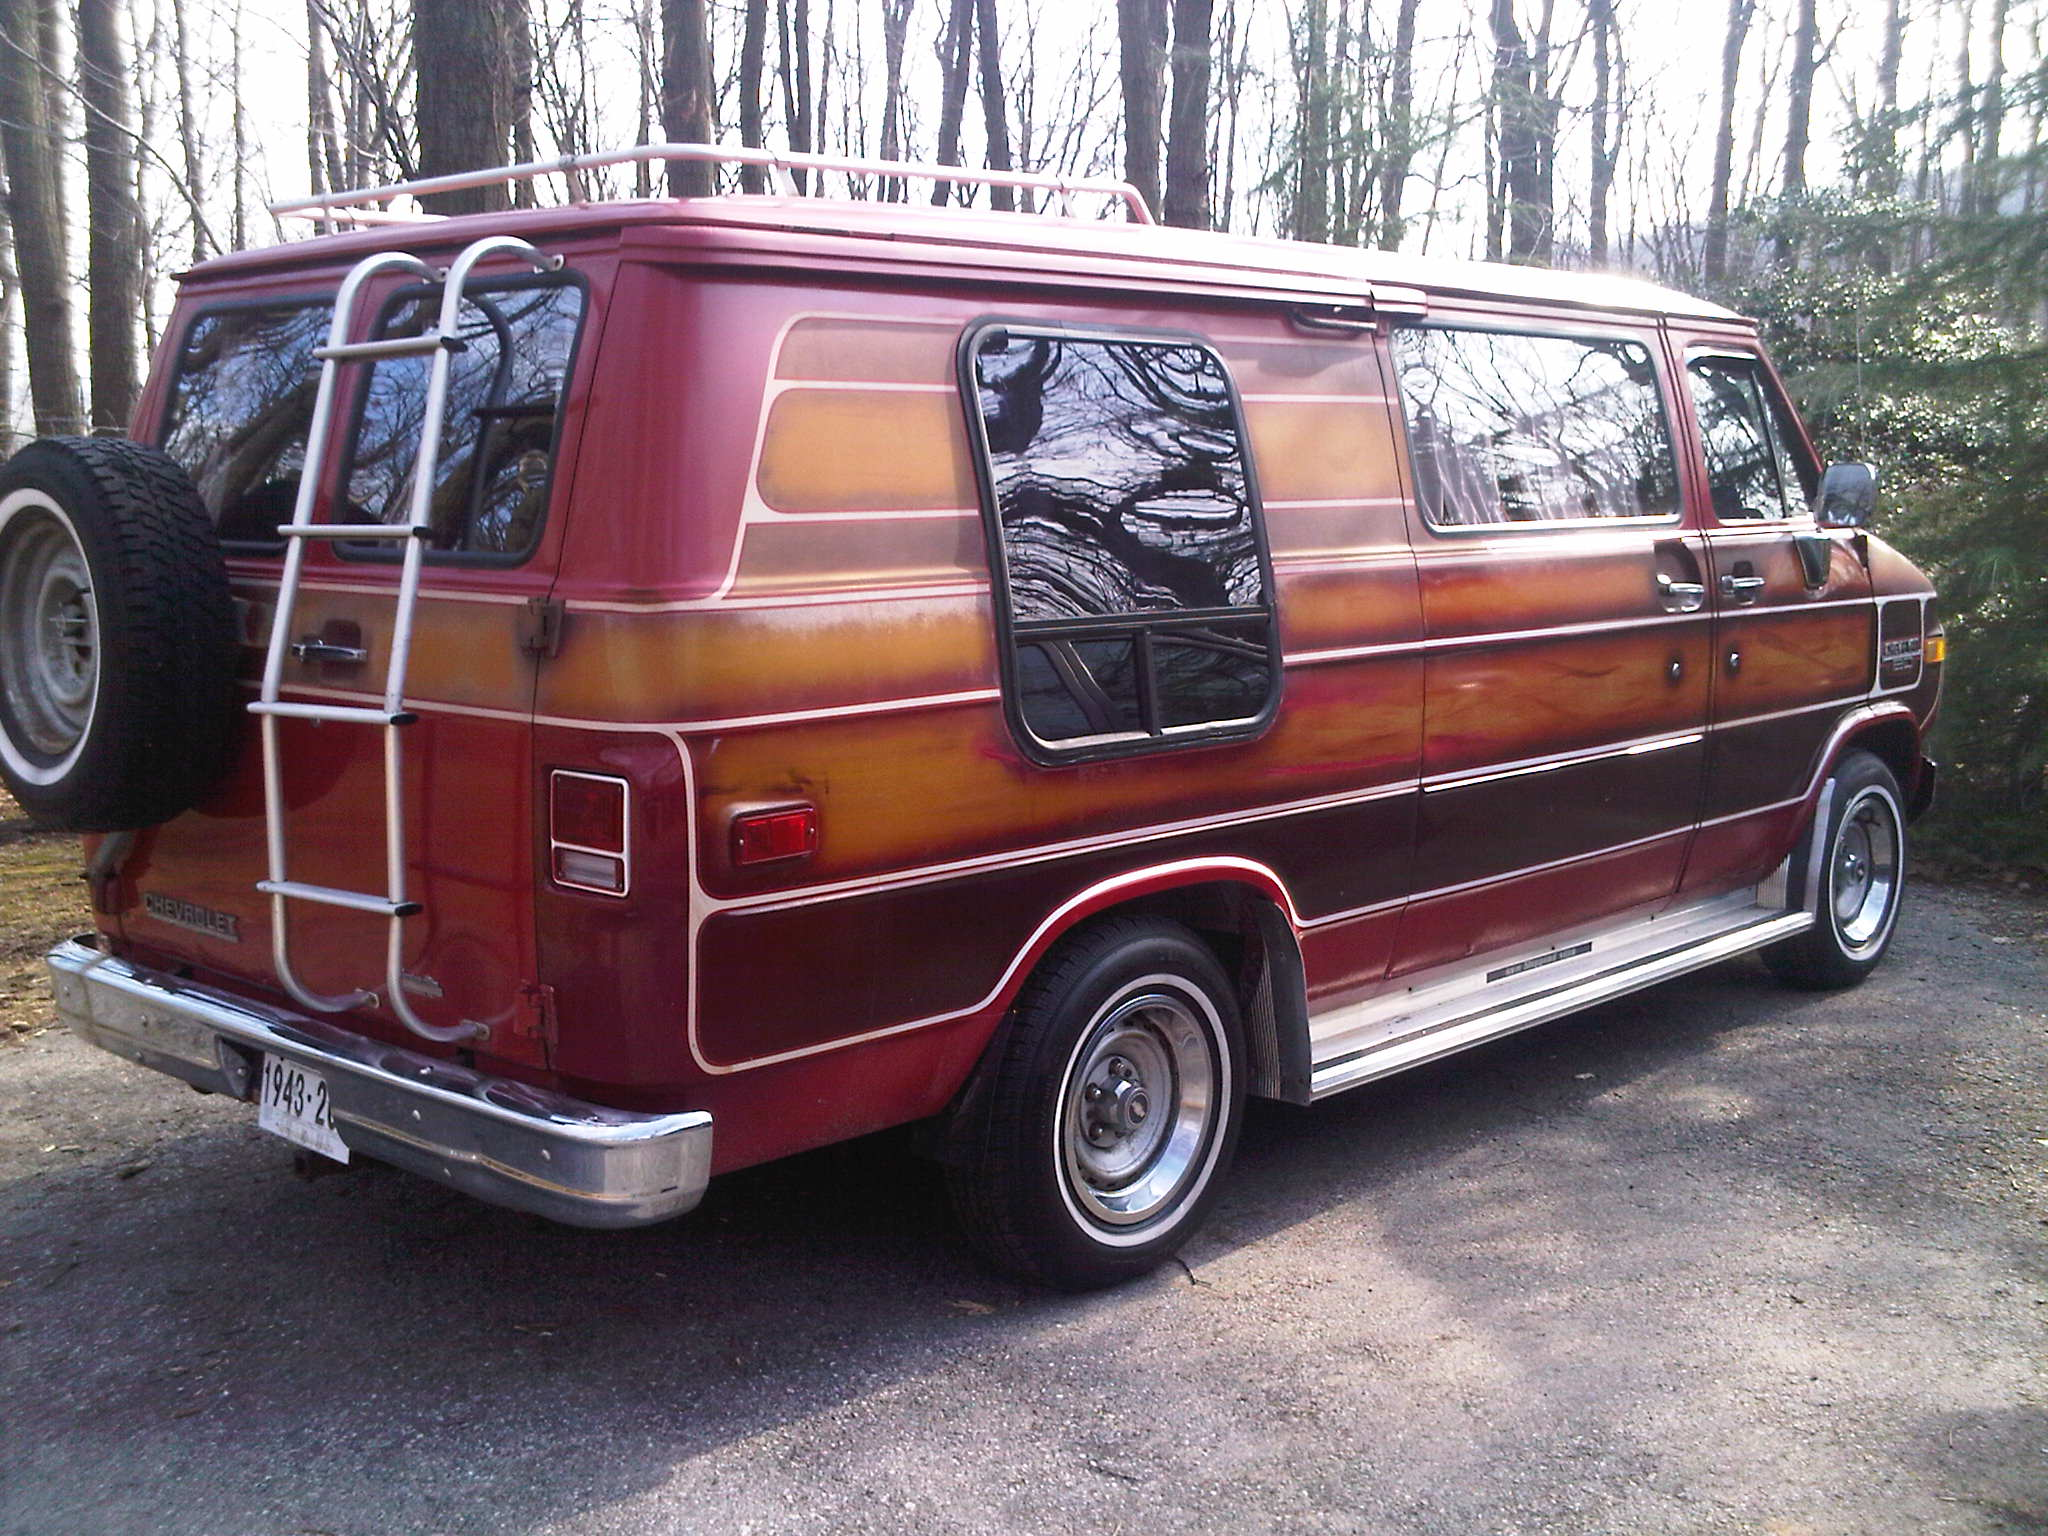 New van - 1983 Chevy G20 - Vannin\' Community and Forums